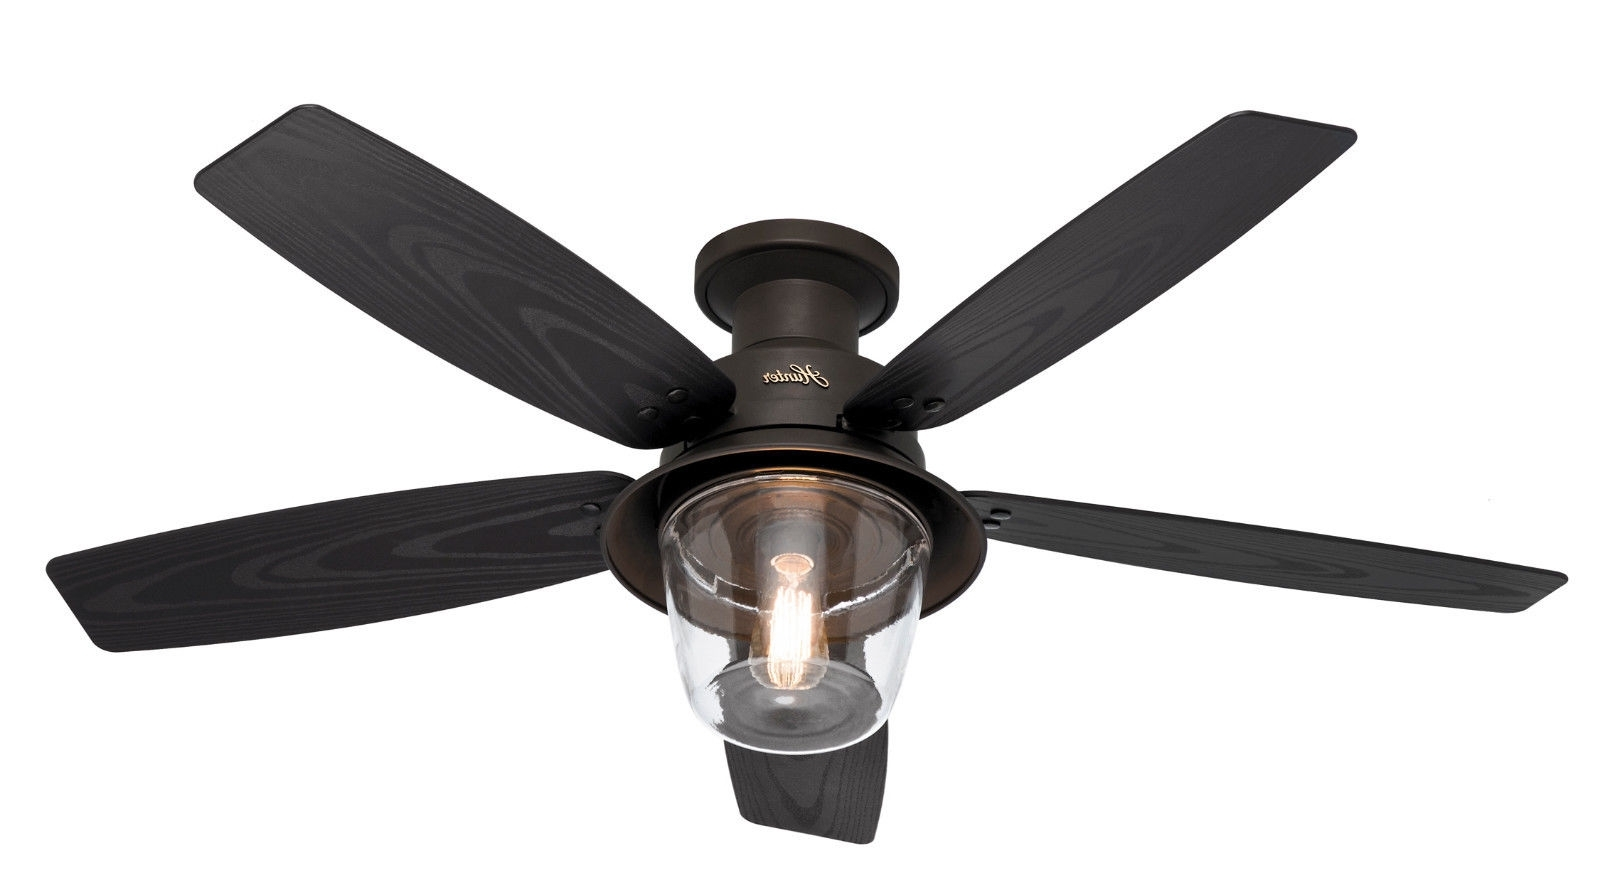 Most Up To Date Ceiling: Astounding Small Outdoor Ceiling Fan Hunter Outdoor Ceiling Throughout Mini Outdoor Ceiling Fans With Lights (View 14 of 20)